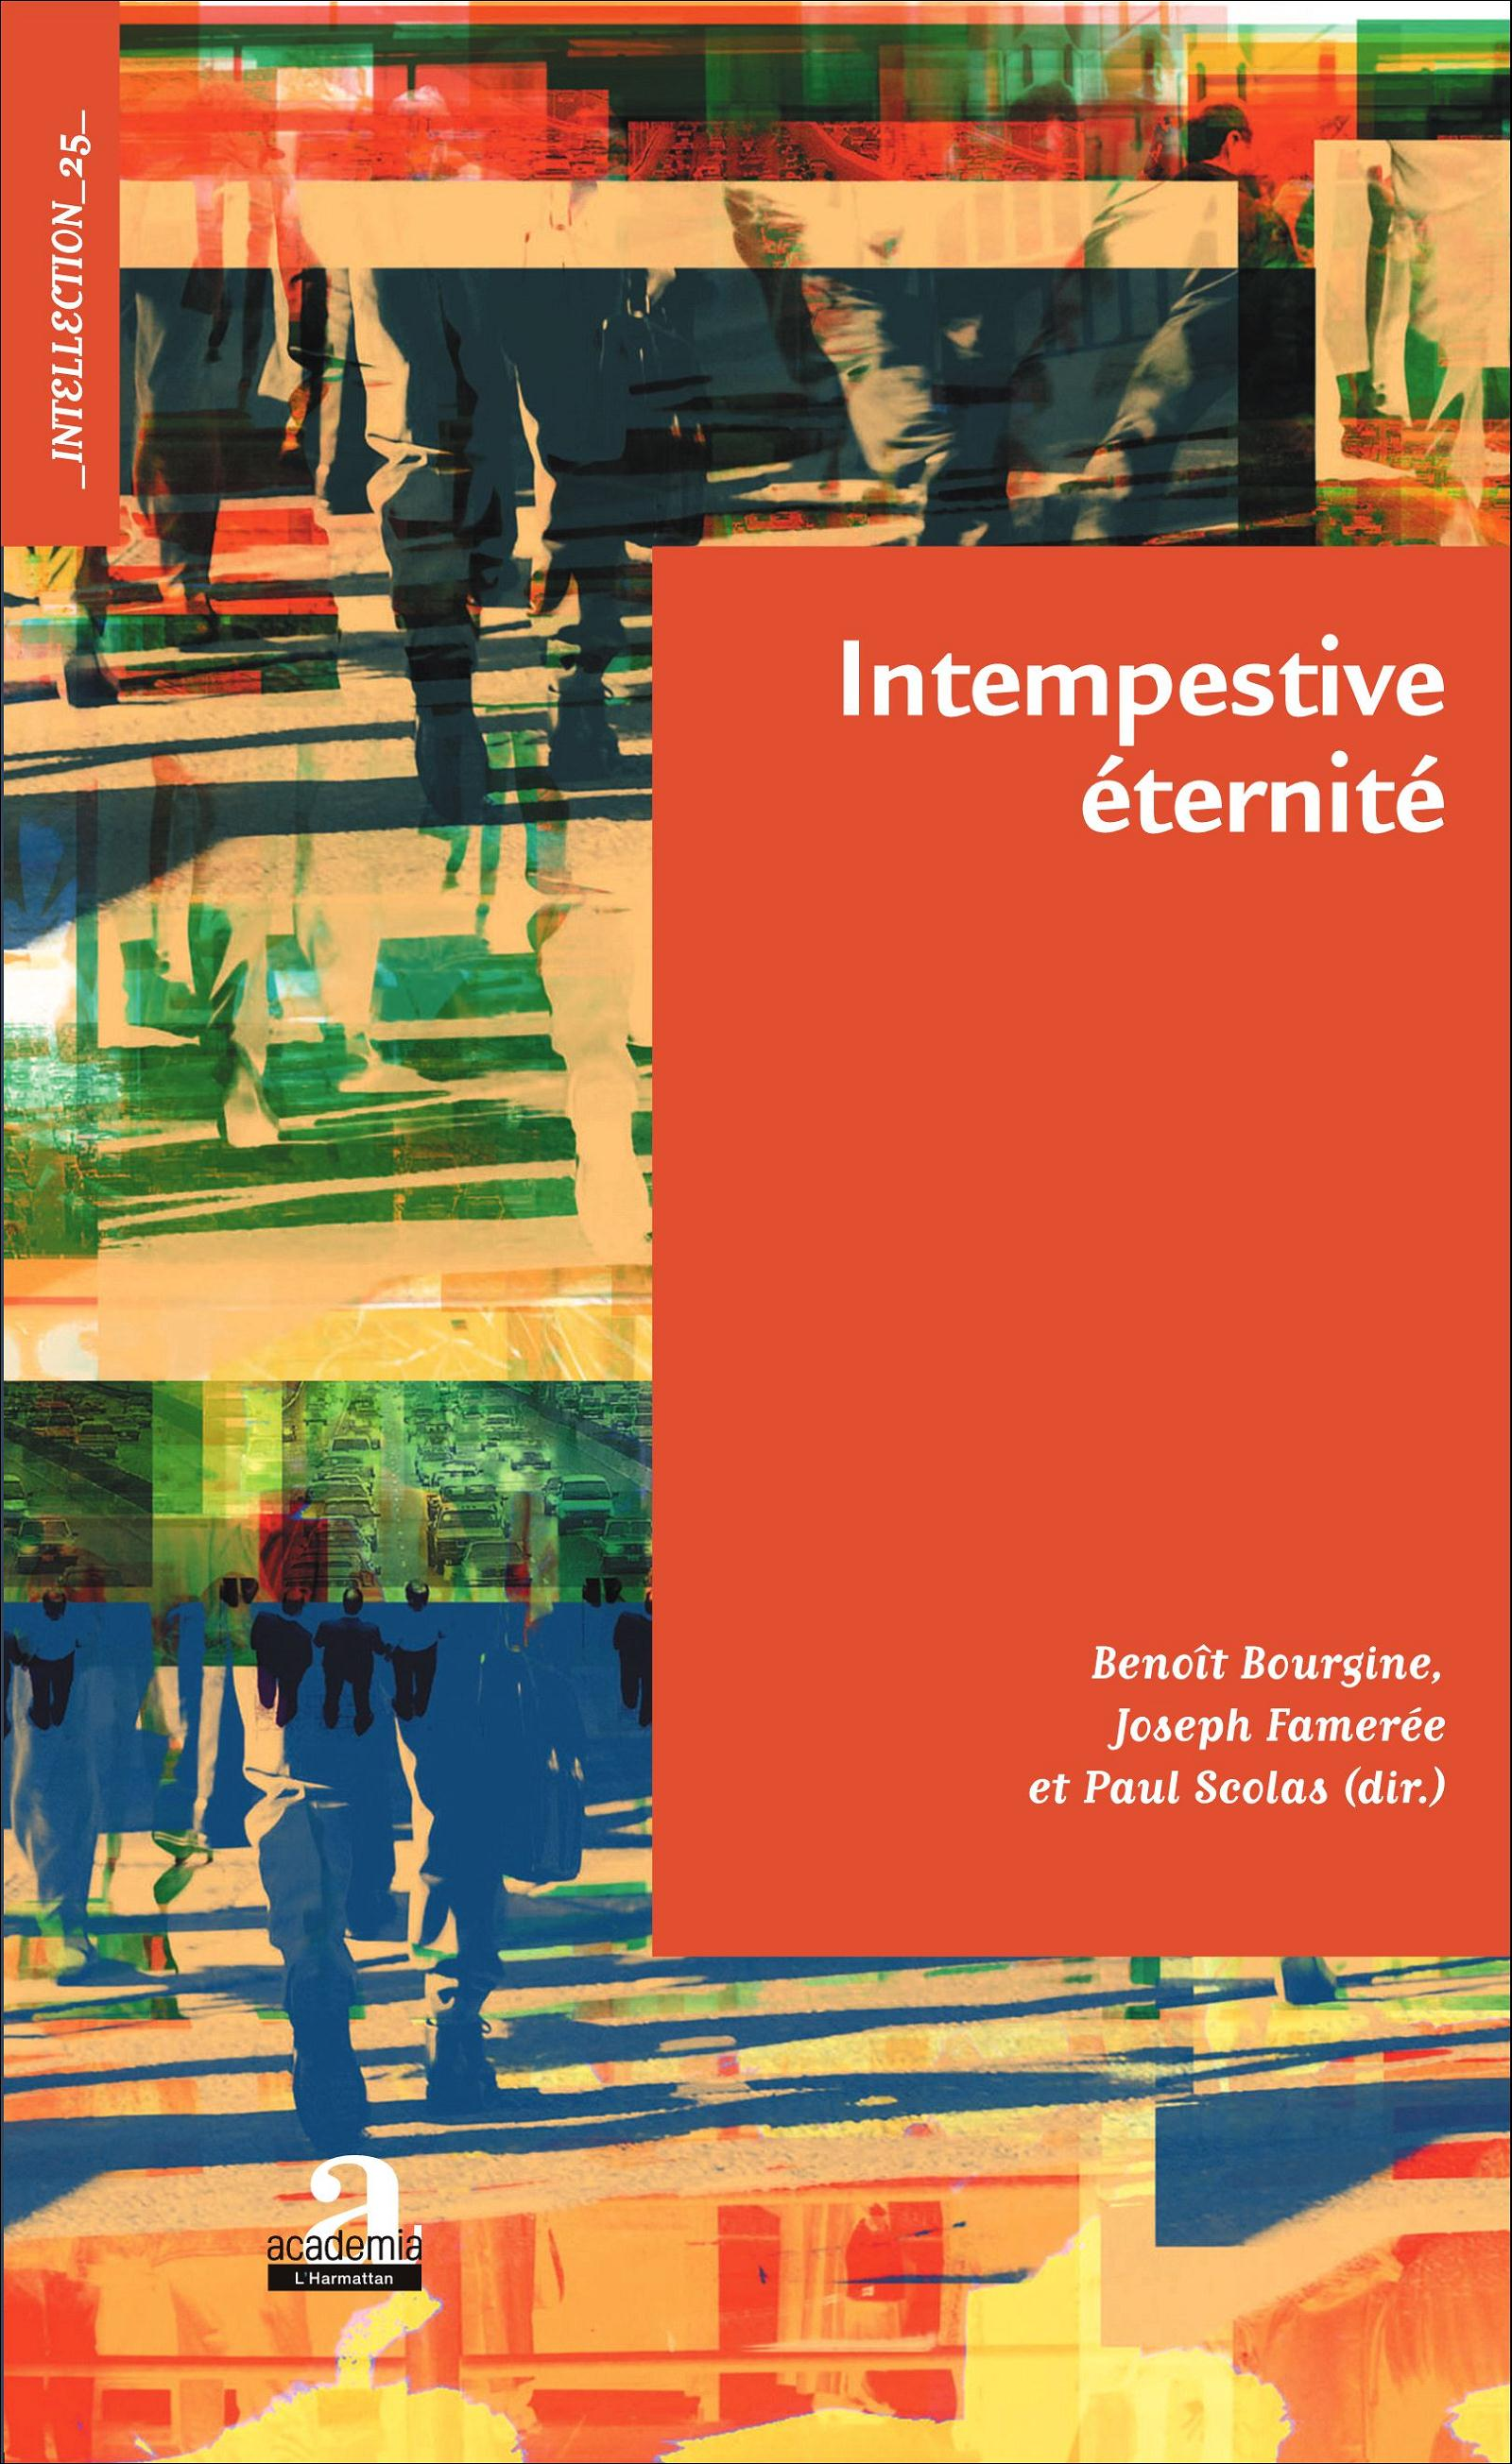 Intempestive éternité